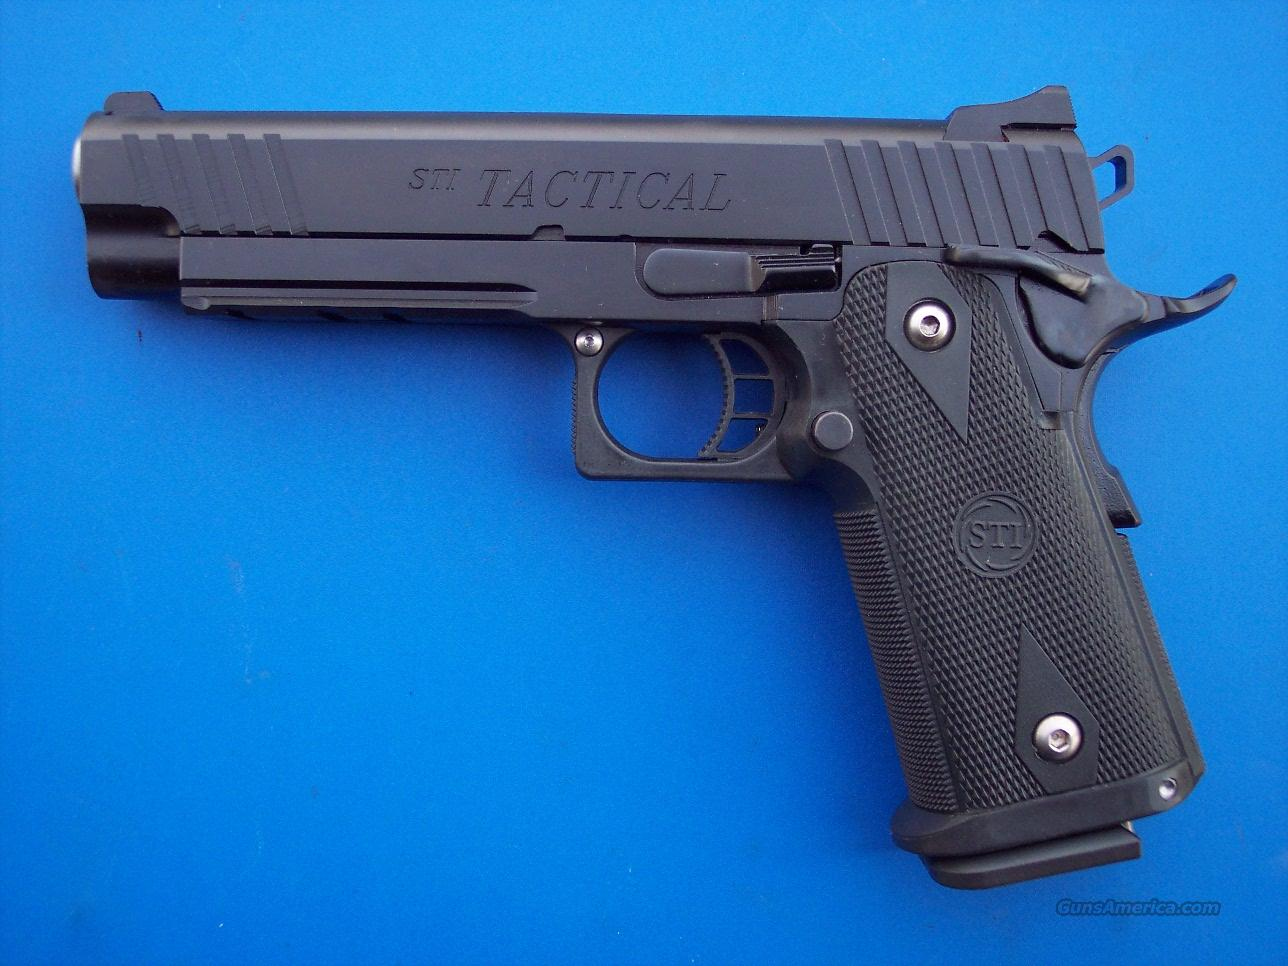 STI Tactical 5.0 40 S&W 2011 *NEW*   Guns > Pistols > STI Pistols